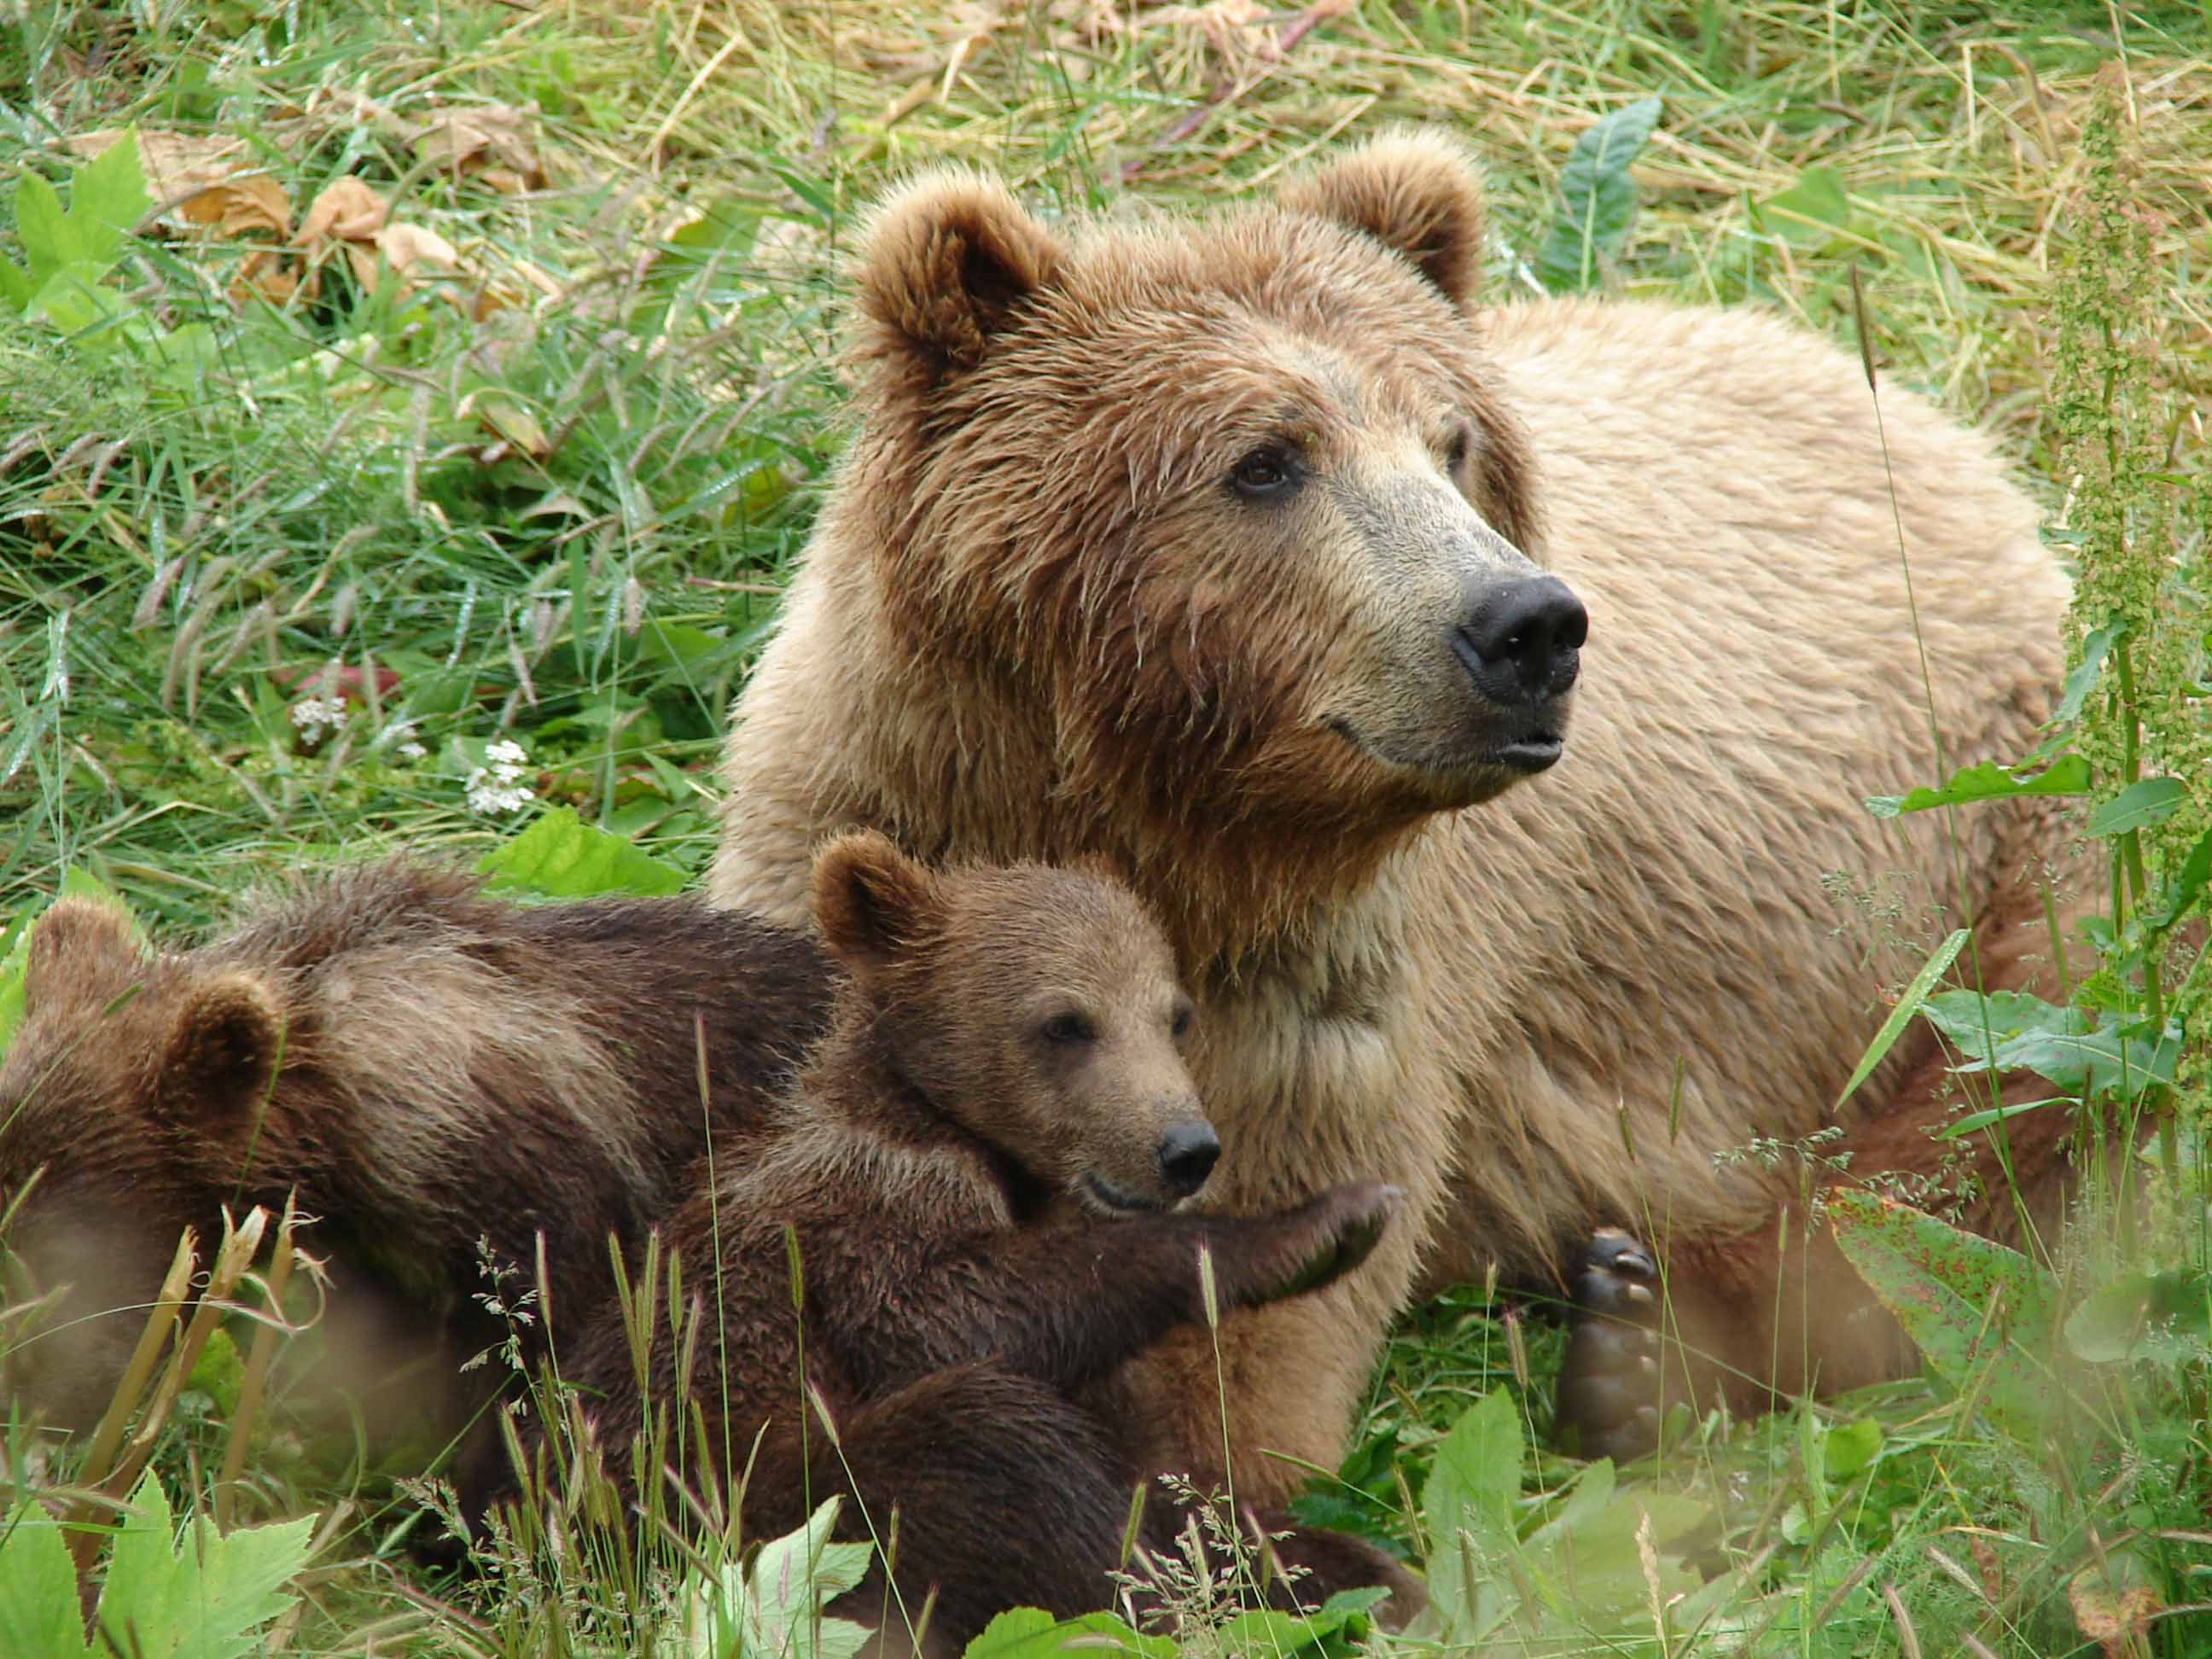 See a mama bear & her cubs in the wild